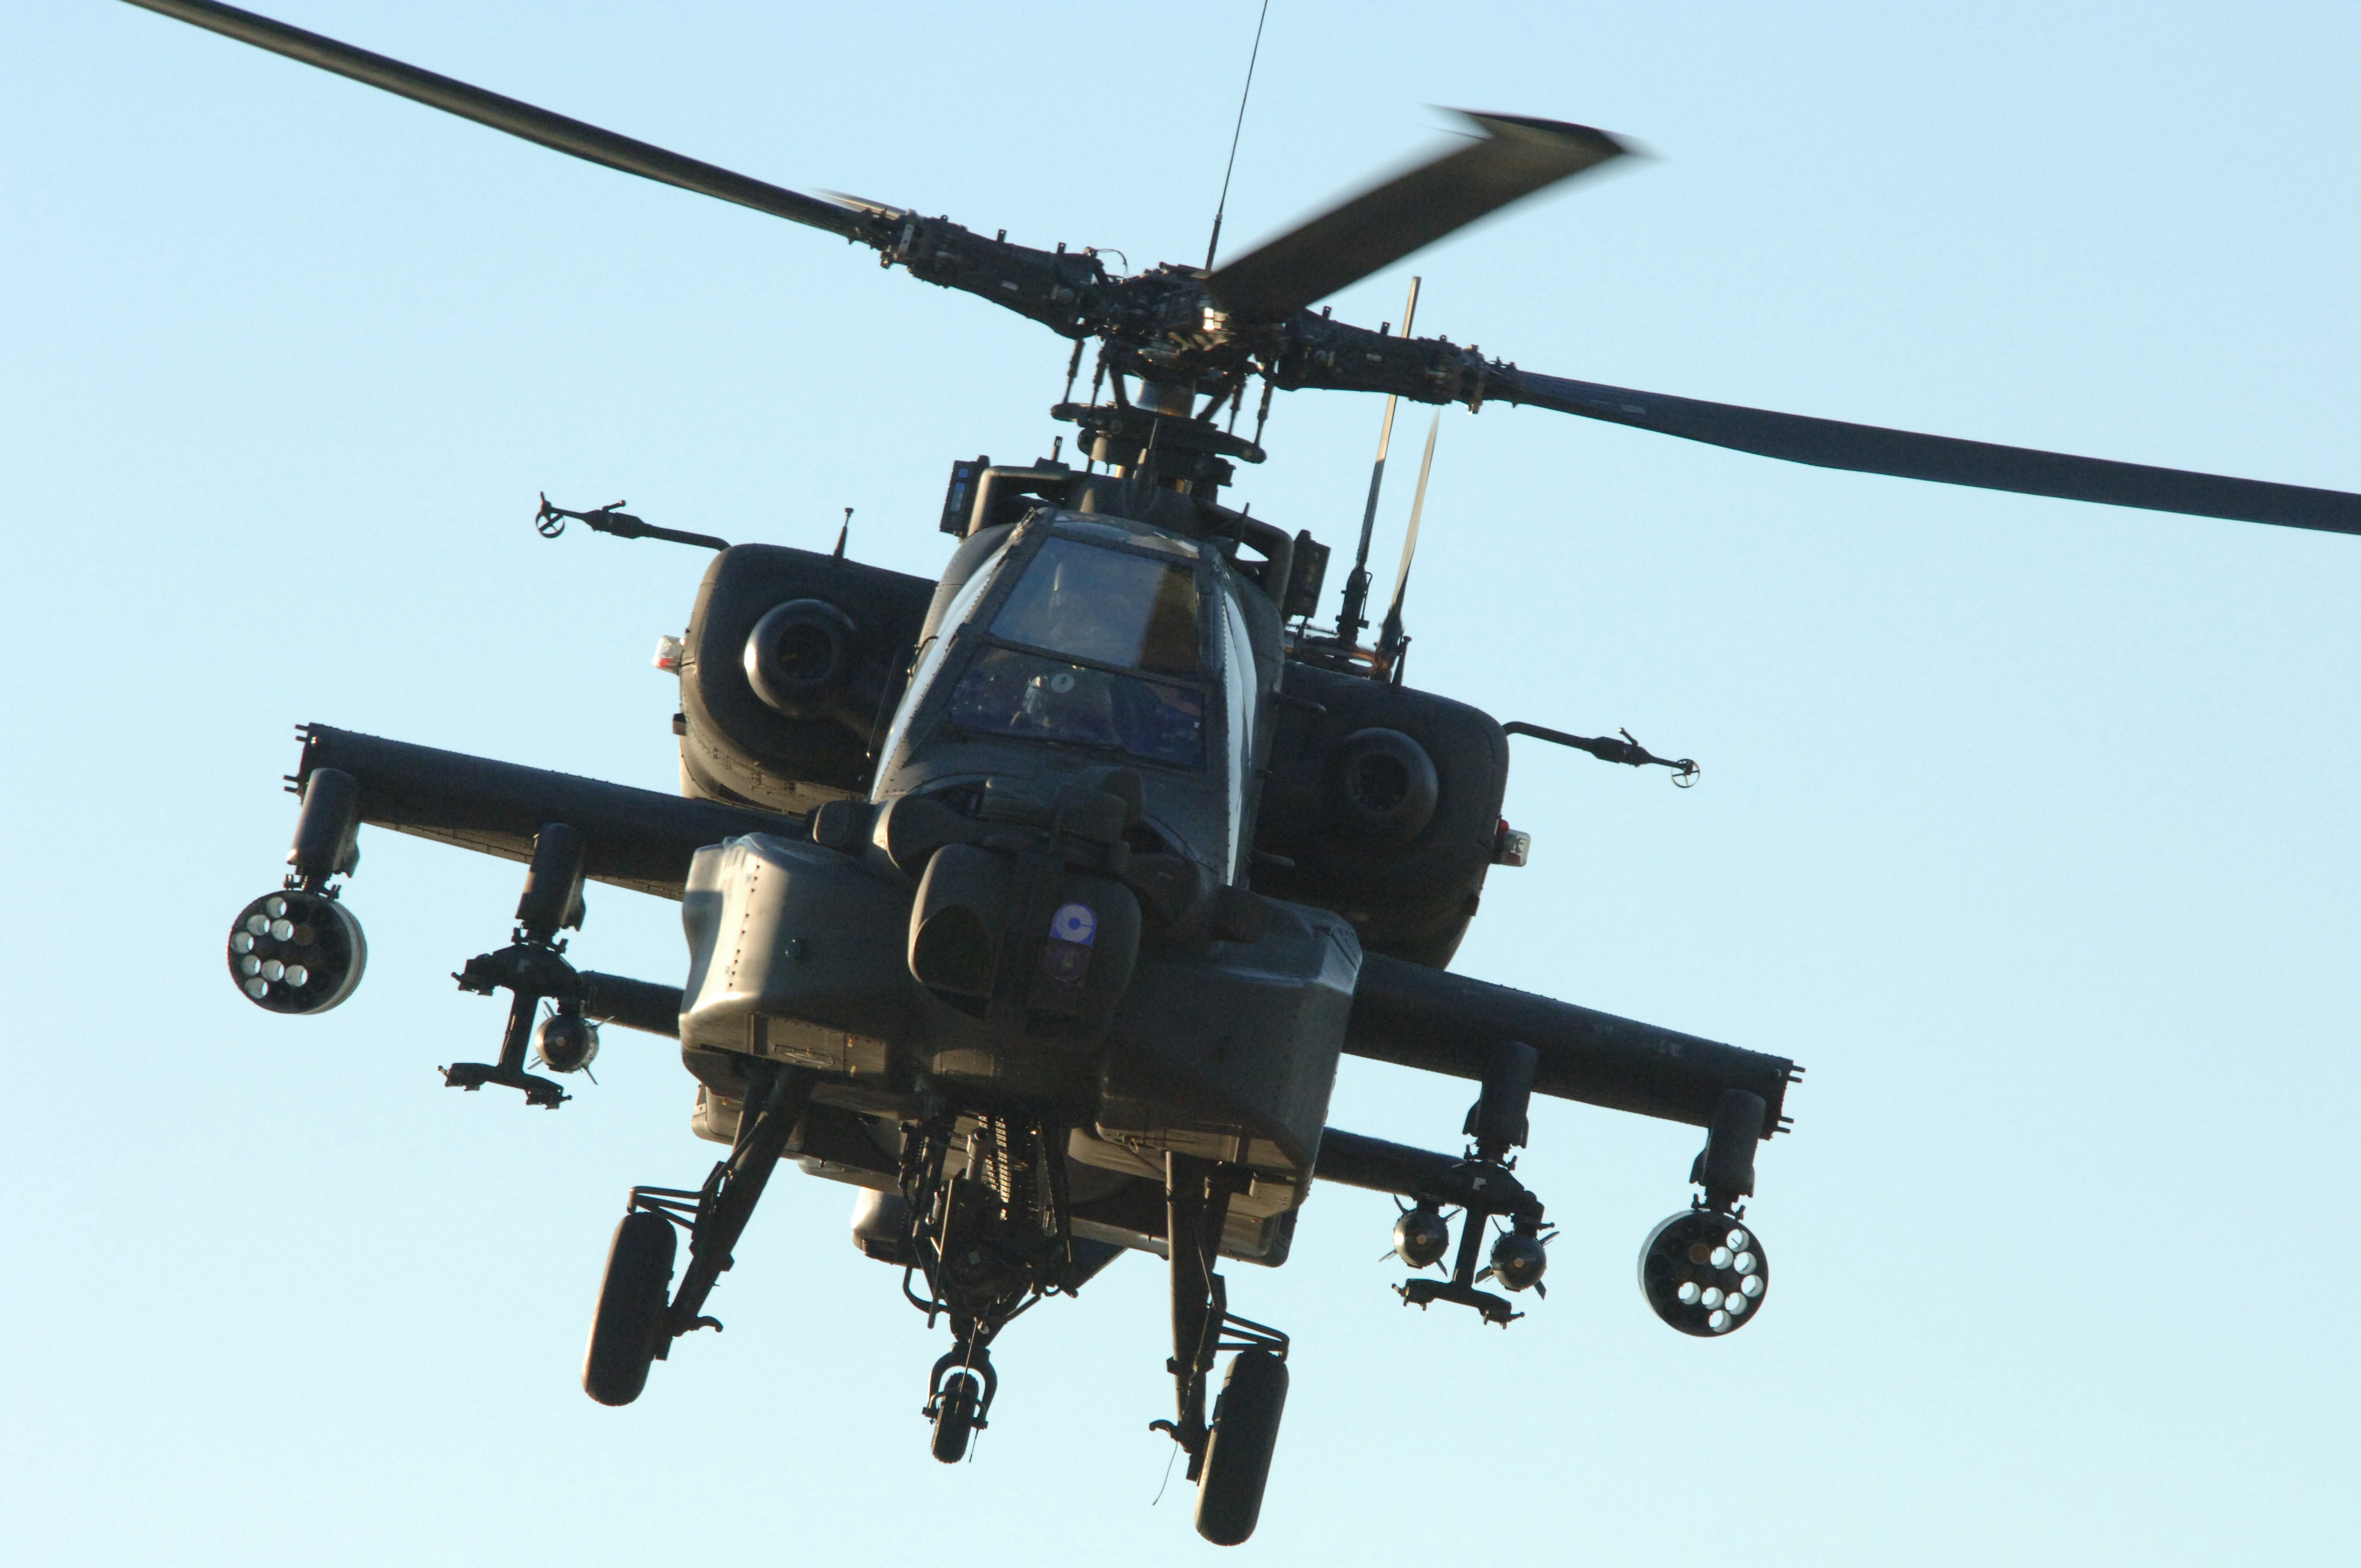 Phun - 2D physics sandbox - forum / Apache attack helicopter